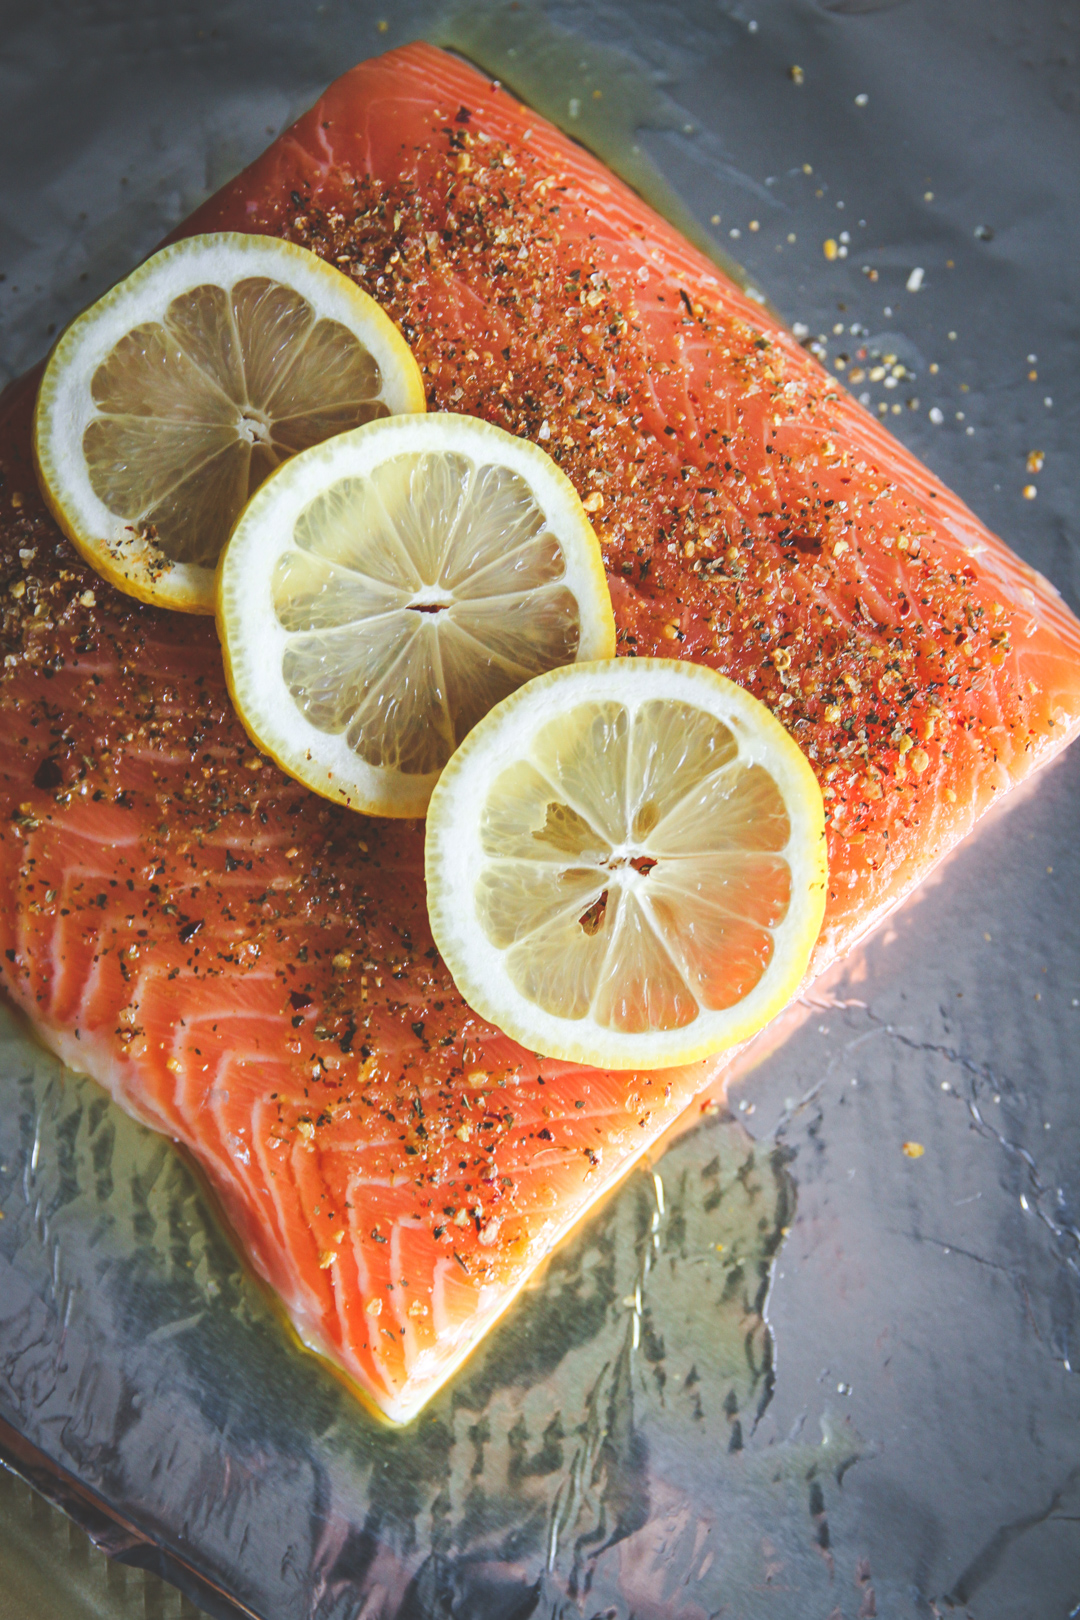 Easy baked salmon recipe, how to bake salmon, easy salmon recipe